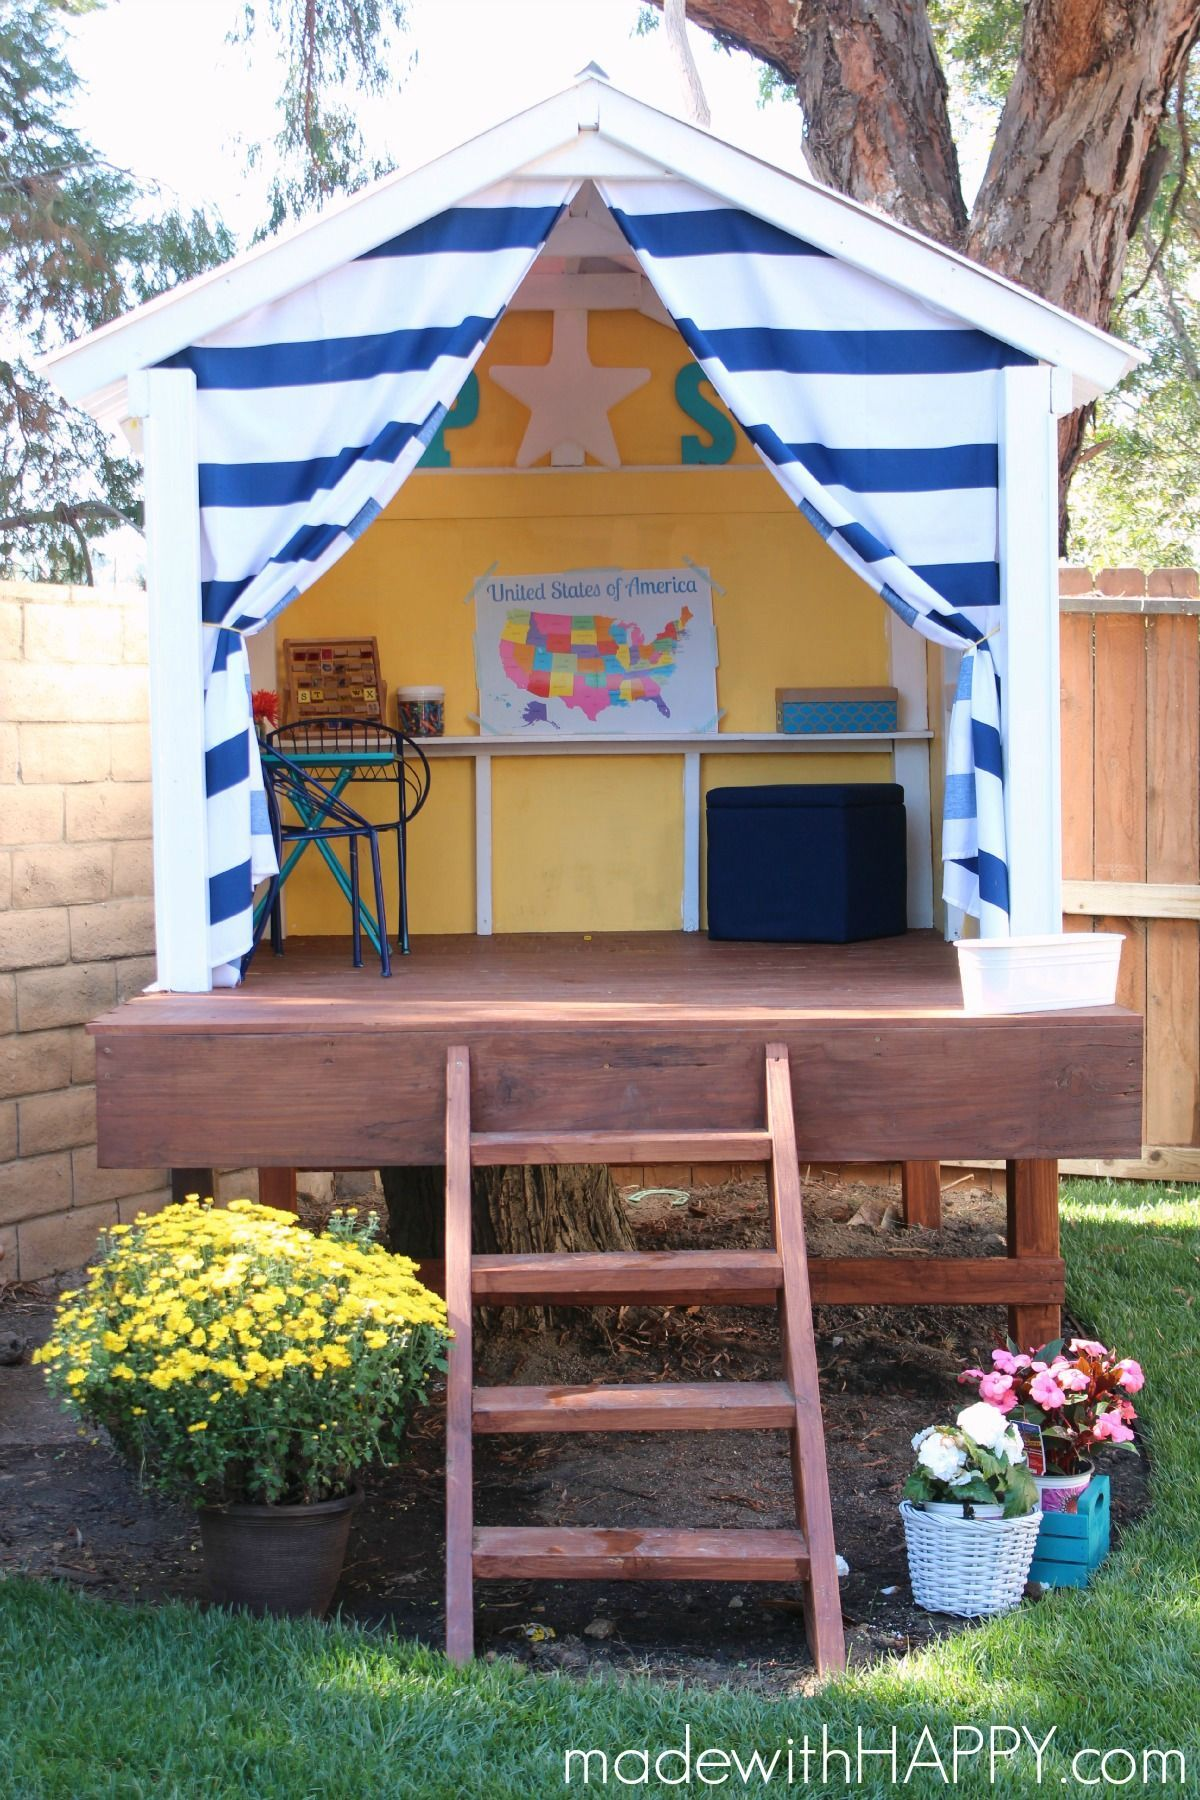 Charming How To Make A Tree House For Under $300. Build Your Own Outdoor Playhouse.    Www.madewithHAPPY.com